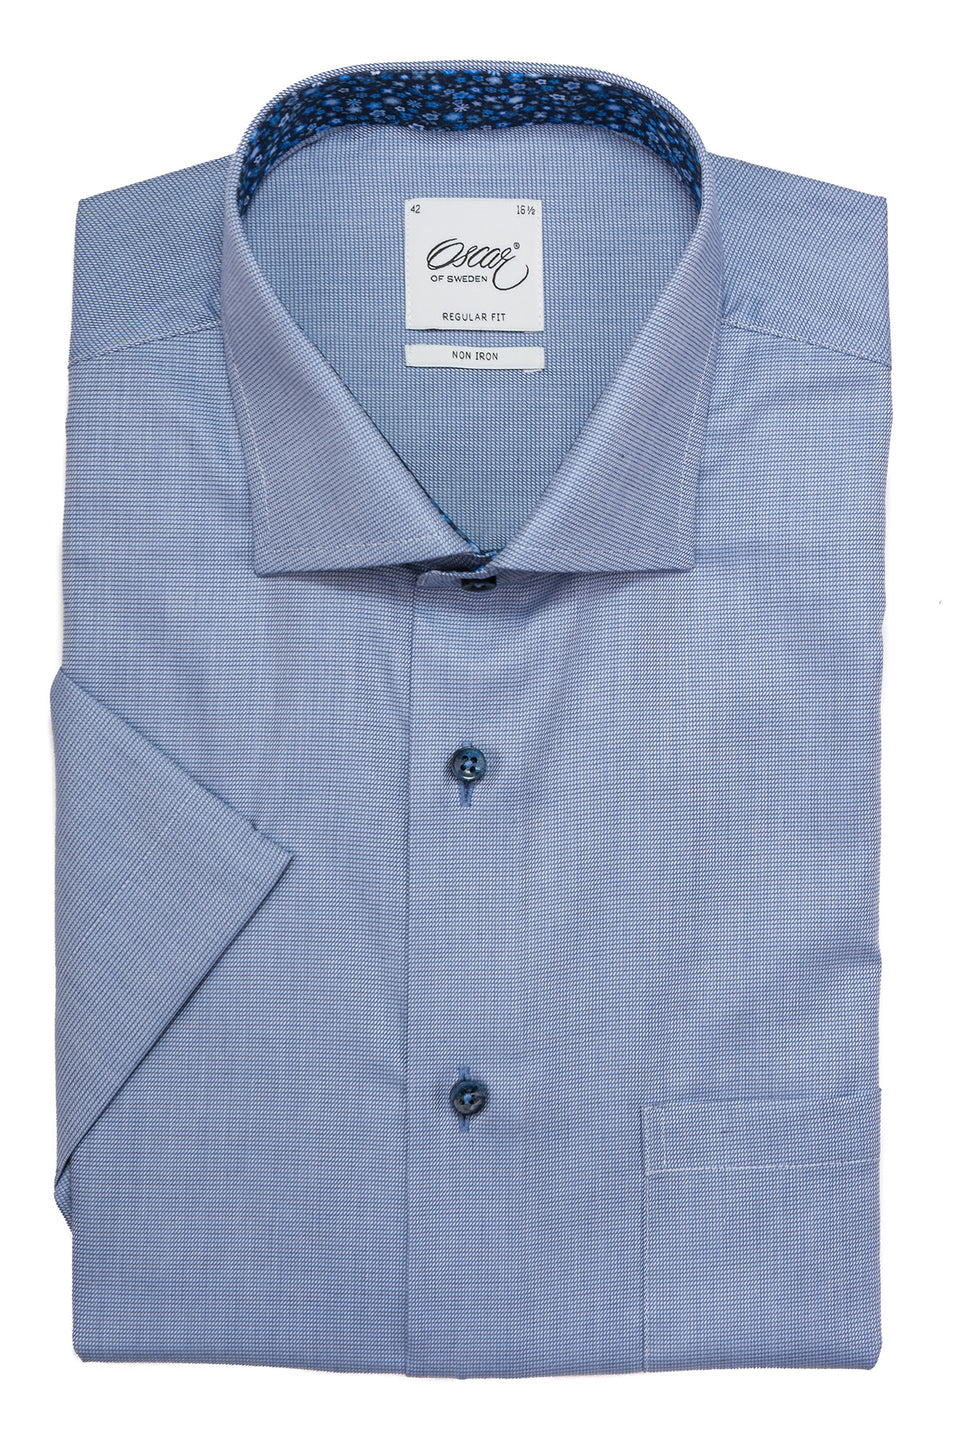 Blue regular fit short sleeve shirt with contrast